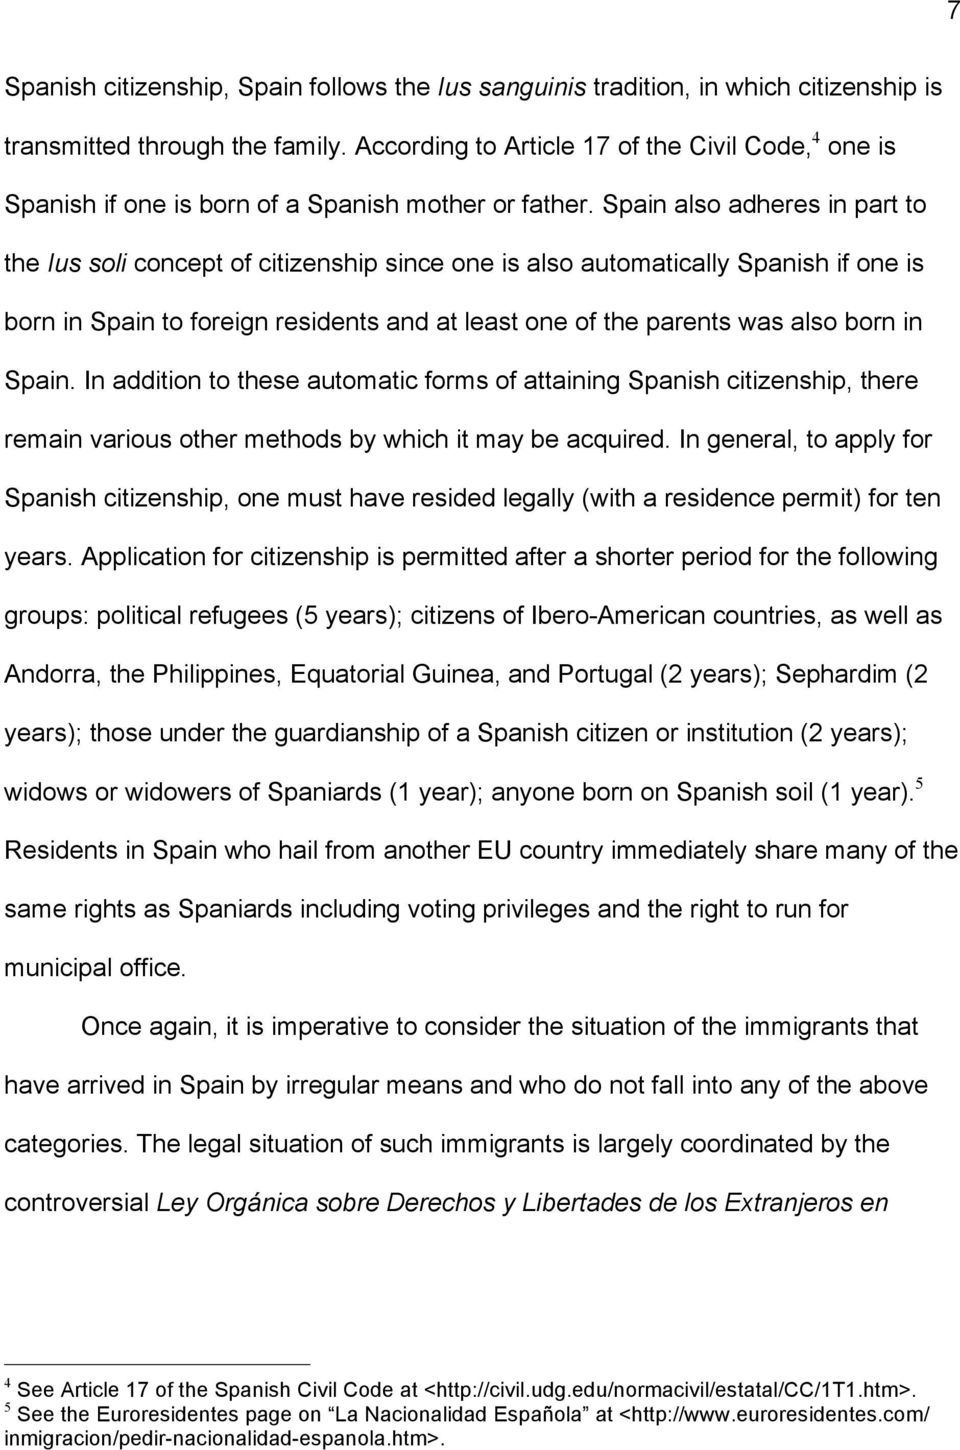 Spain also adheres in part to the Ius soli concept of citizenship since one is also automatically Spanish if one is born in Spain to foreign residents and at least one of the parents was also born in